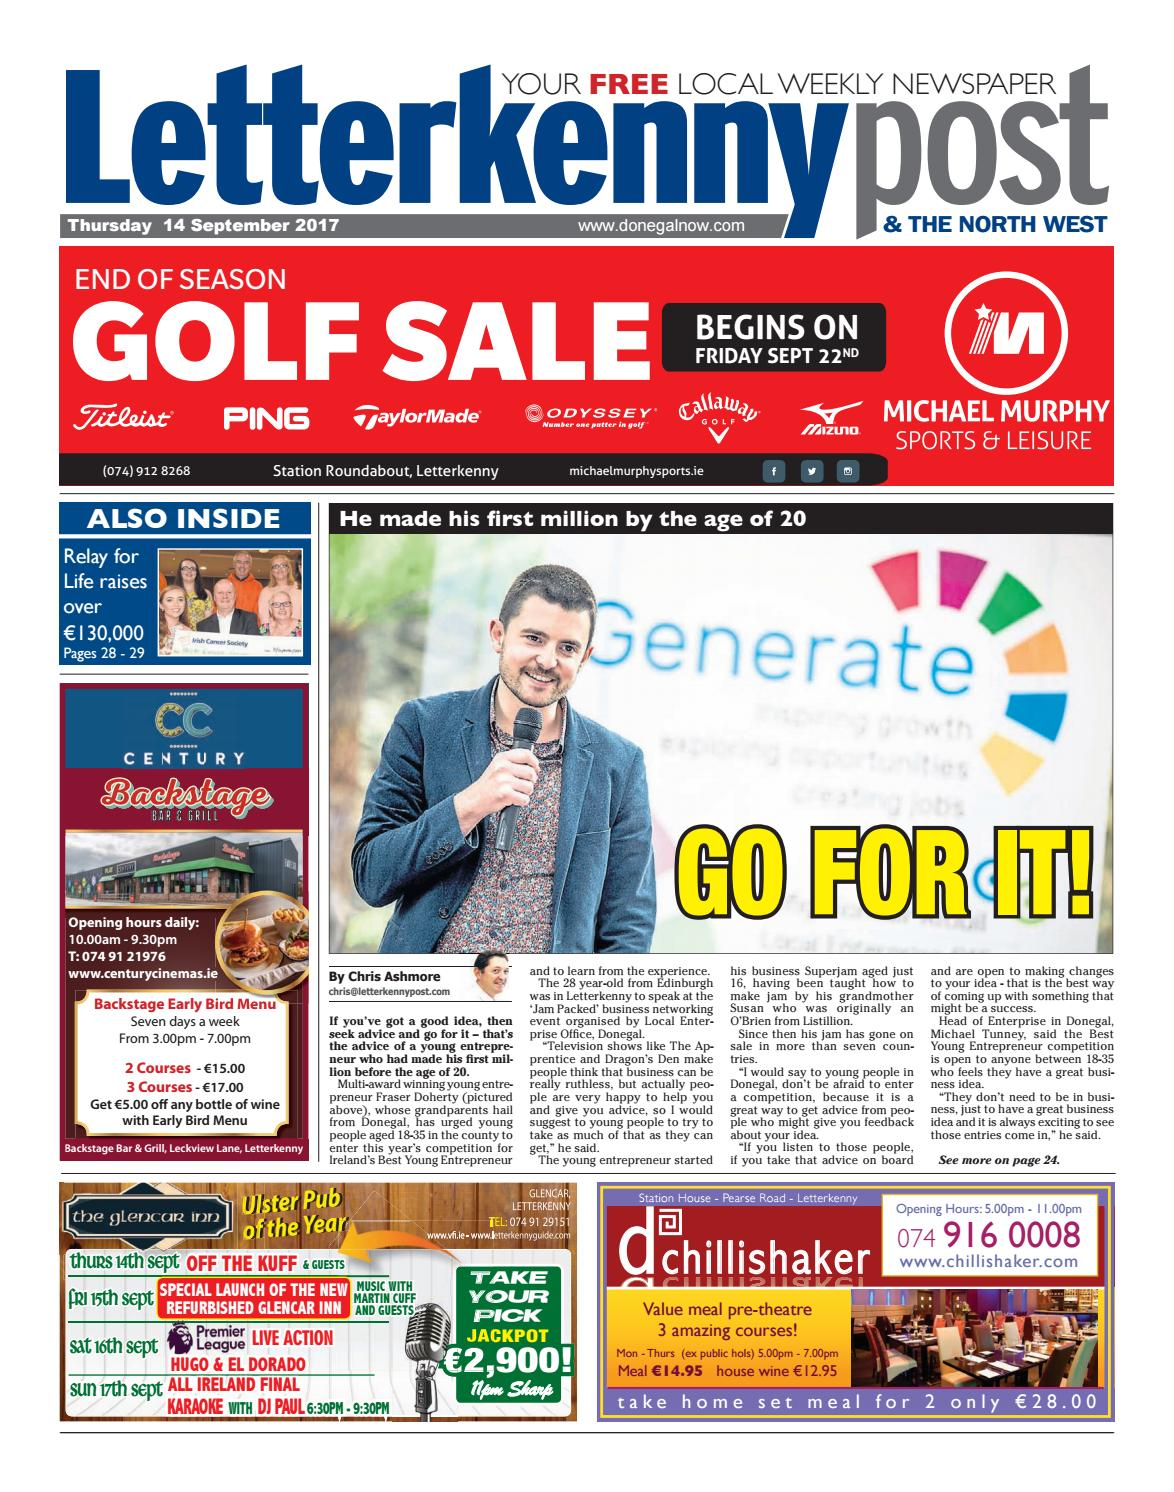 Letterkenny post 14 9 17 by River Media Newspapers - issuu